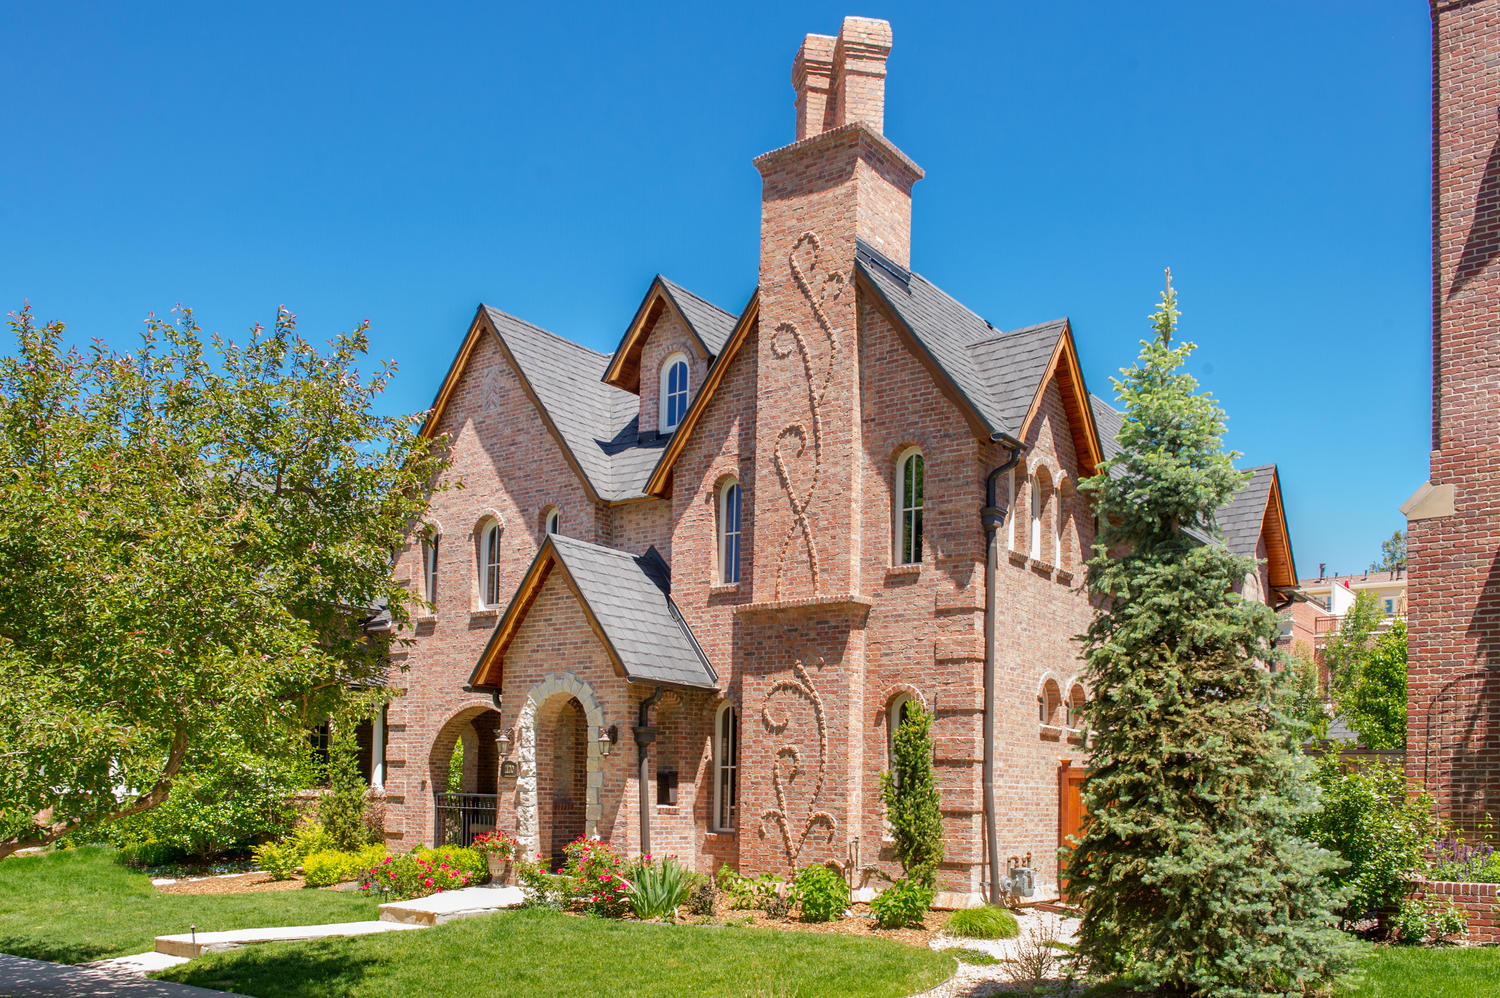 一戸建て のために 売買 アット Custom-built Storybook English Tudor 1120 South High Street Washington Park, Denver, コロラド, 80210 アメリカ合衆国